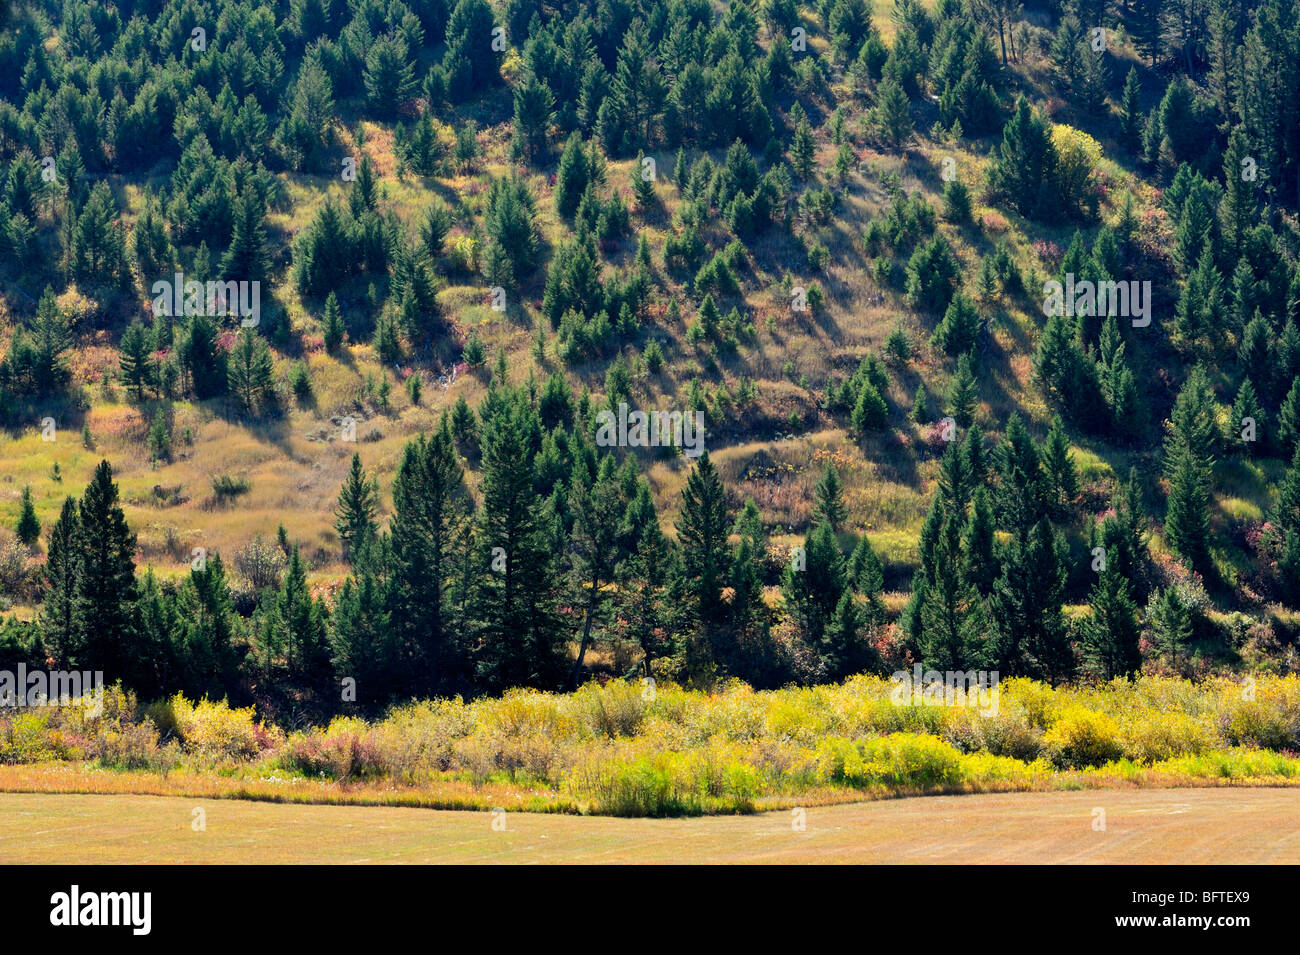 Mountain slope with conifers overlooking pastureland, Bozeman, Montana, USA - Stock Image